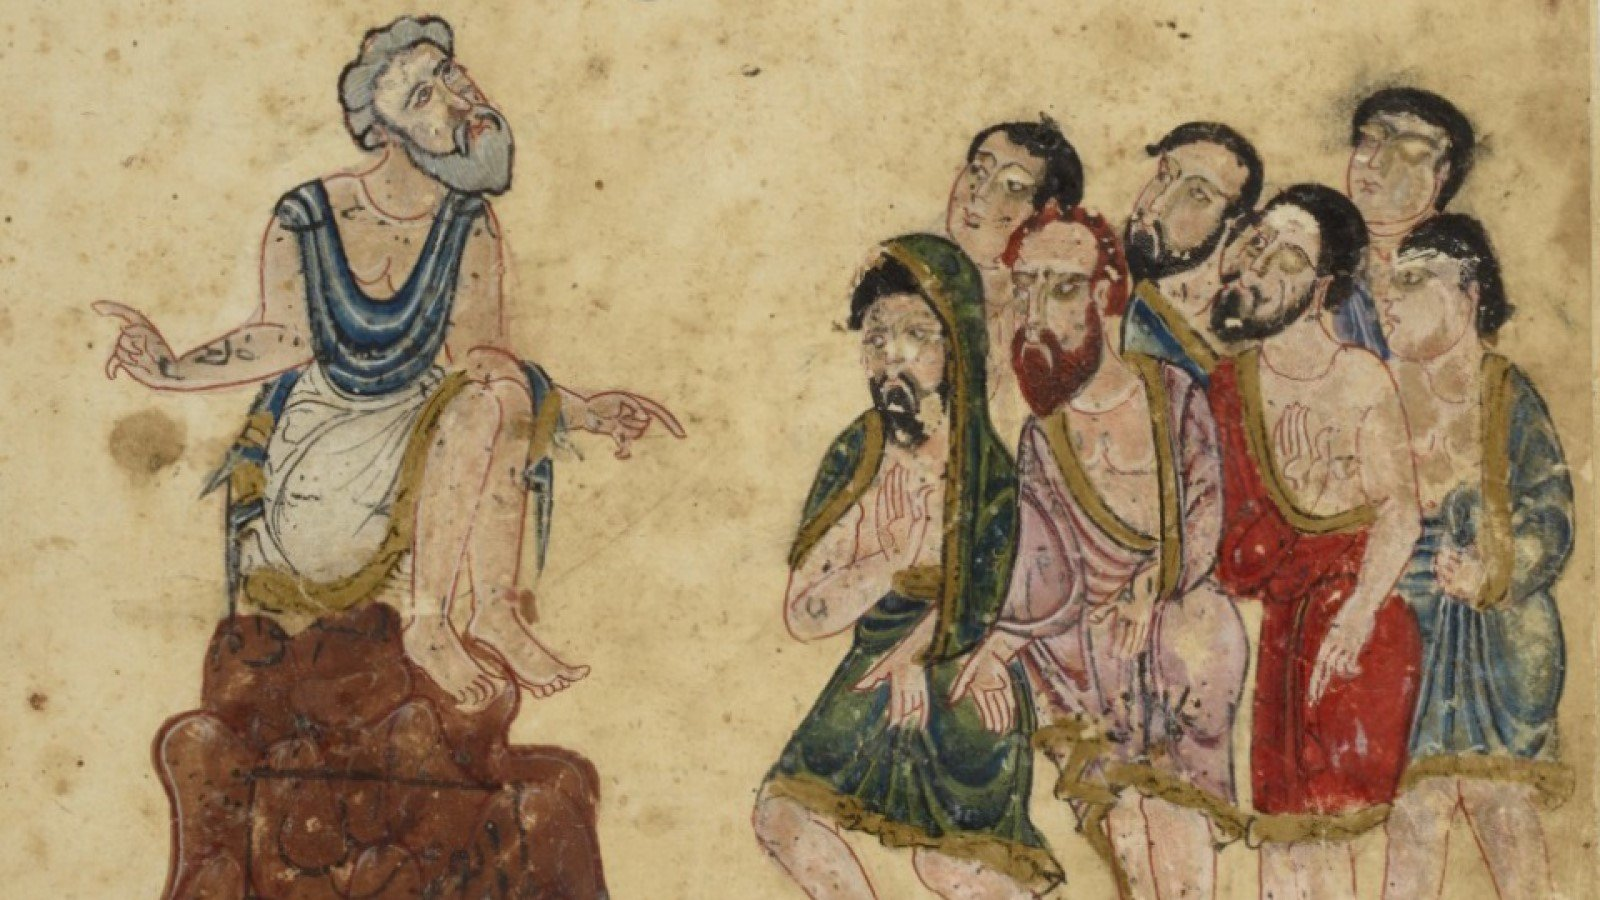 Is 'Science' Always Exact? - Free online evening lecture by History of Science Museum, University of Oxford. Image shows Aristotle teaching natural philosophy